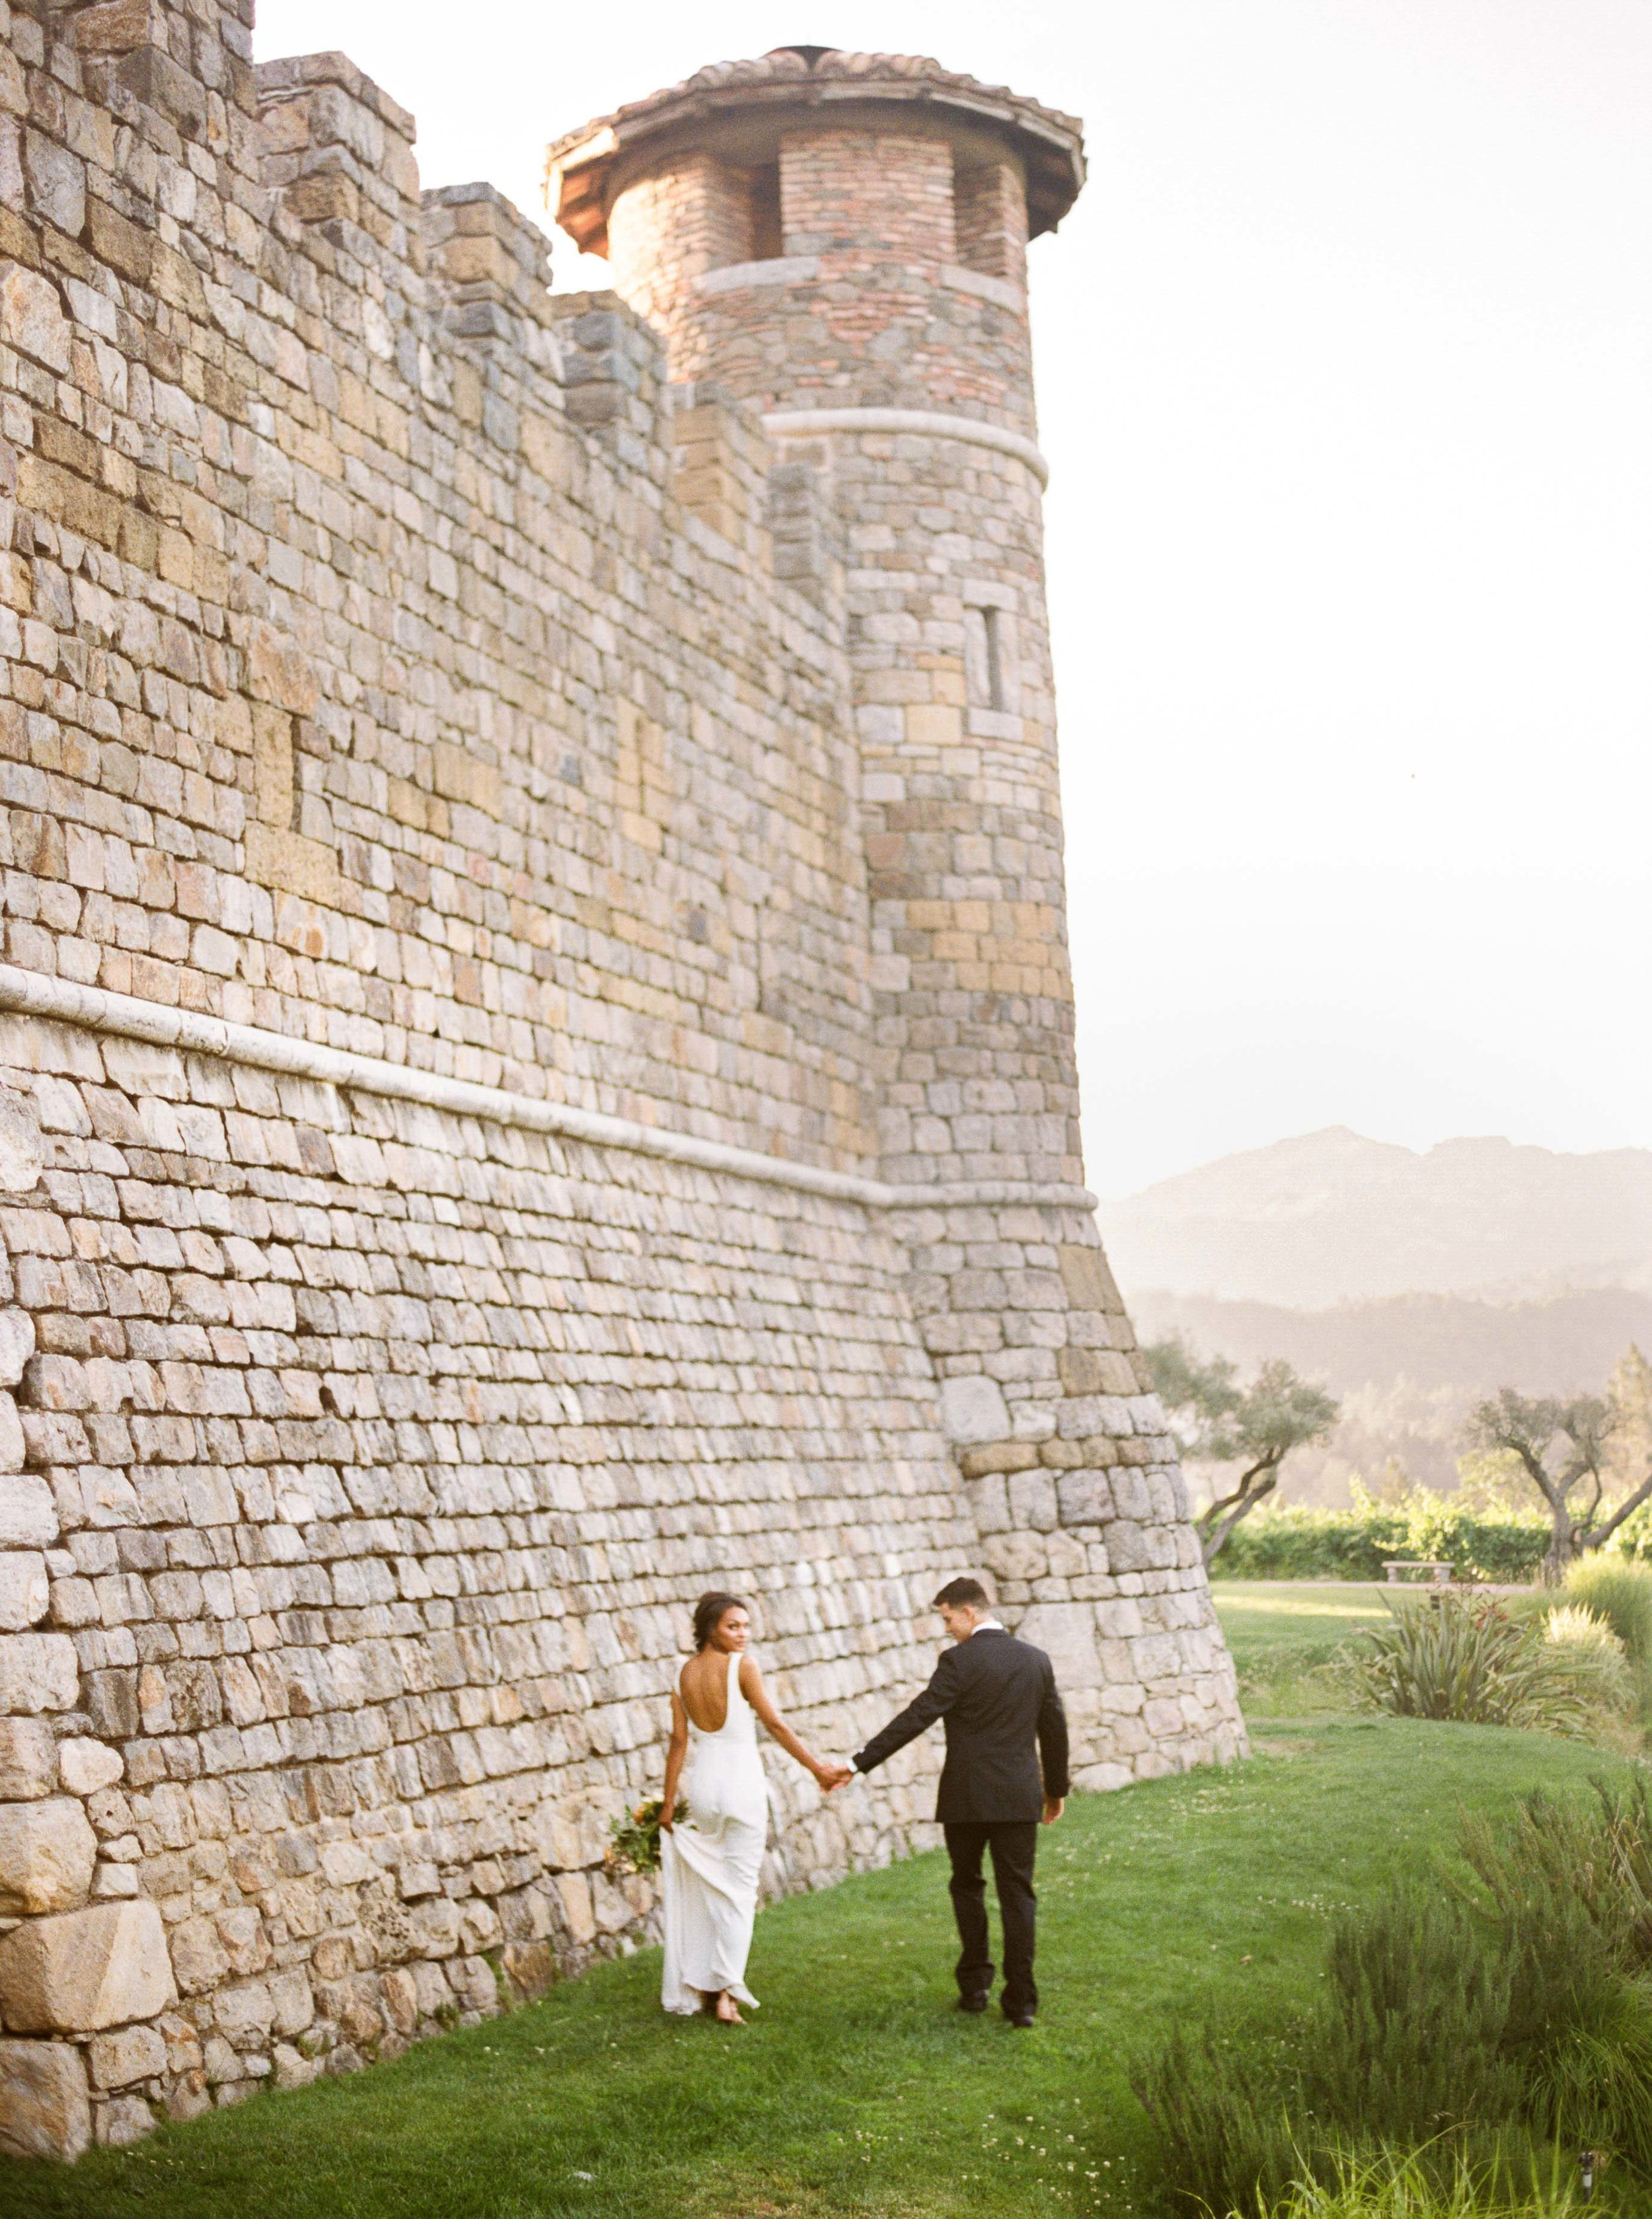 050napa_wedding_photographer_and_videographer_destination_and_elopement_photography.jpg